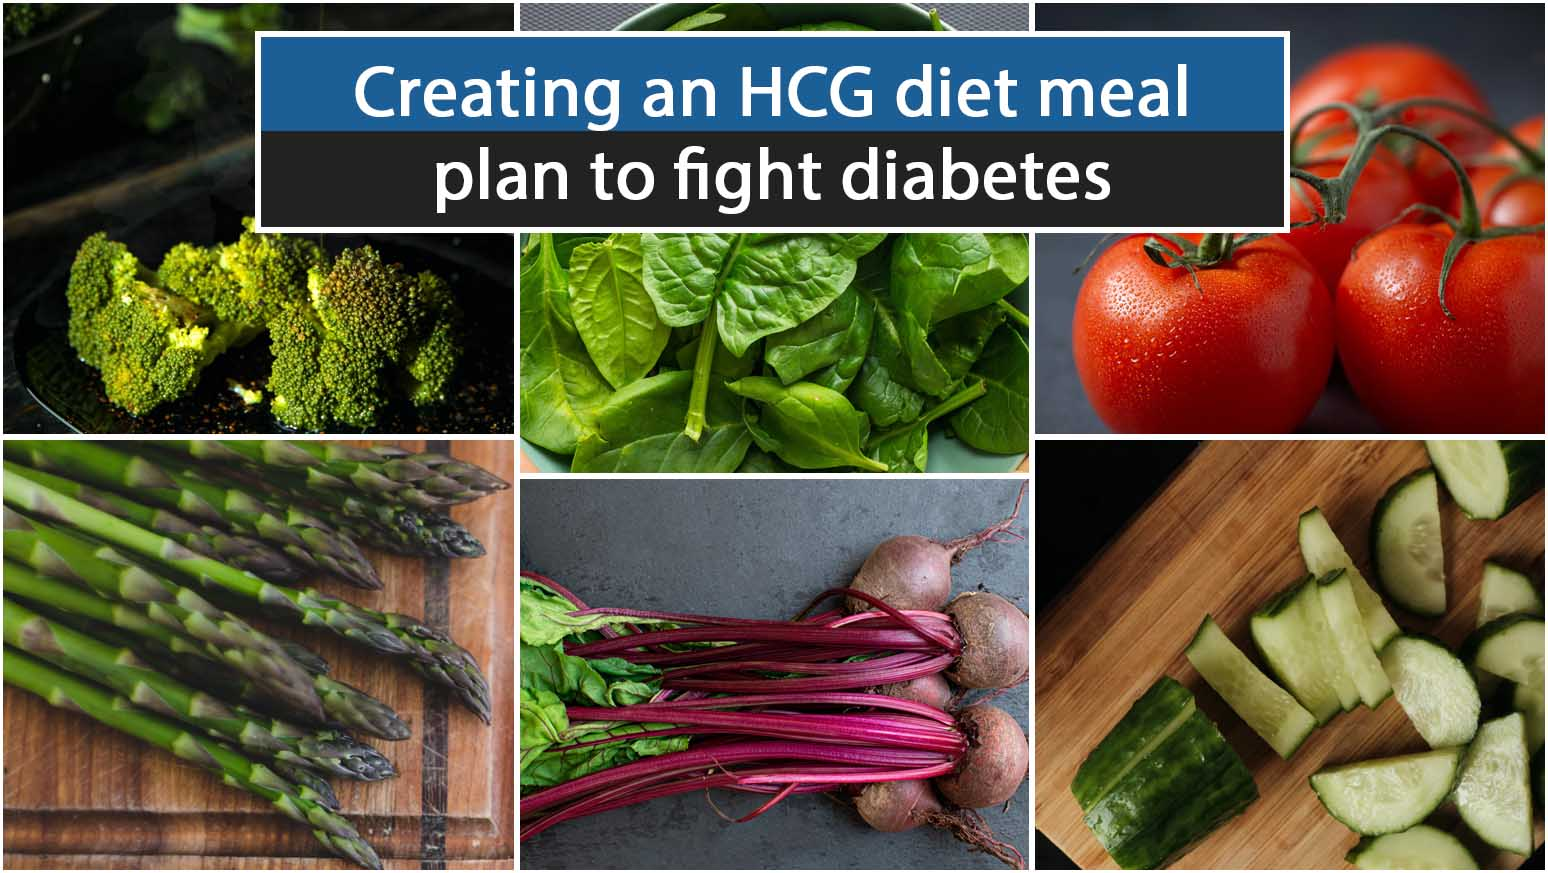 Creating an HCG diet meal plan to fight diabetes